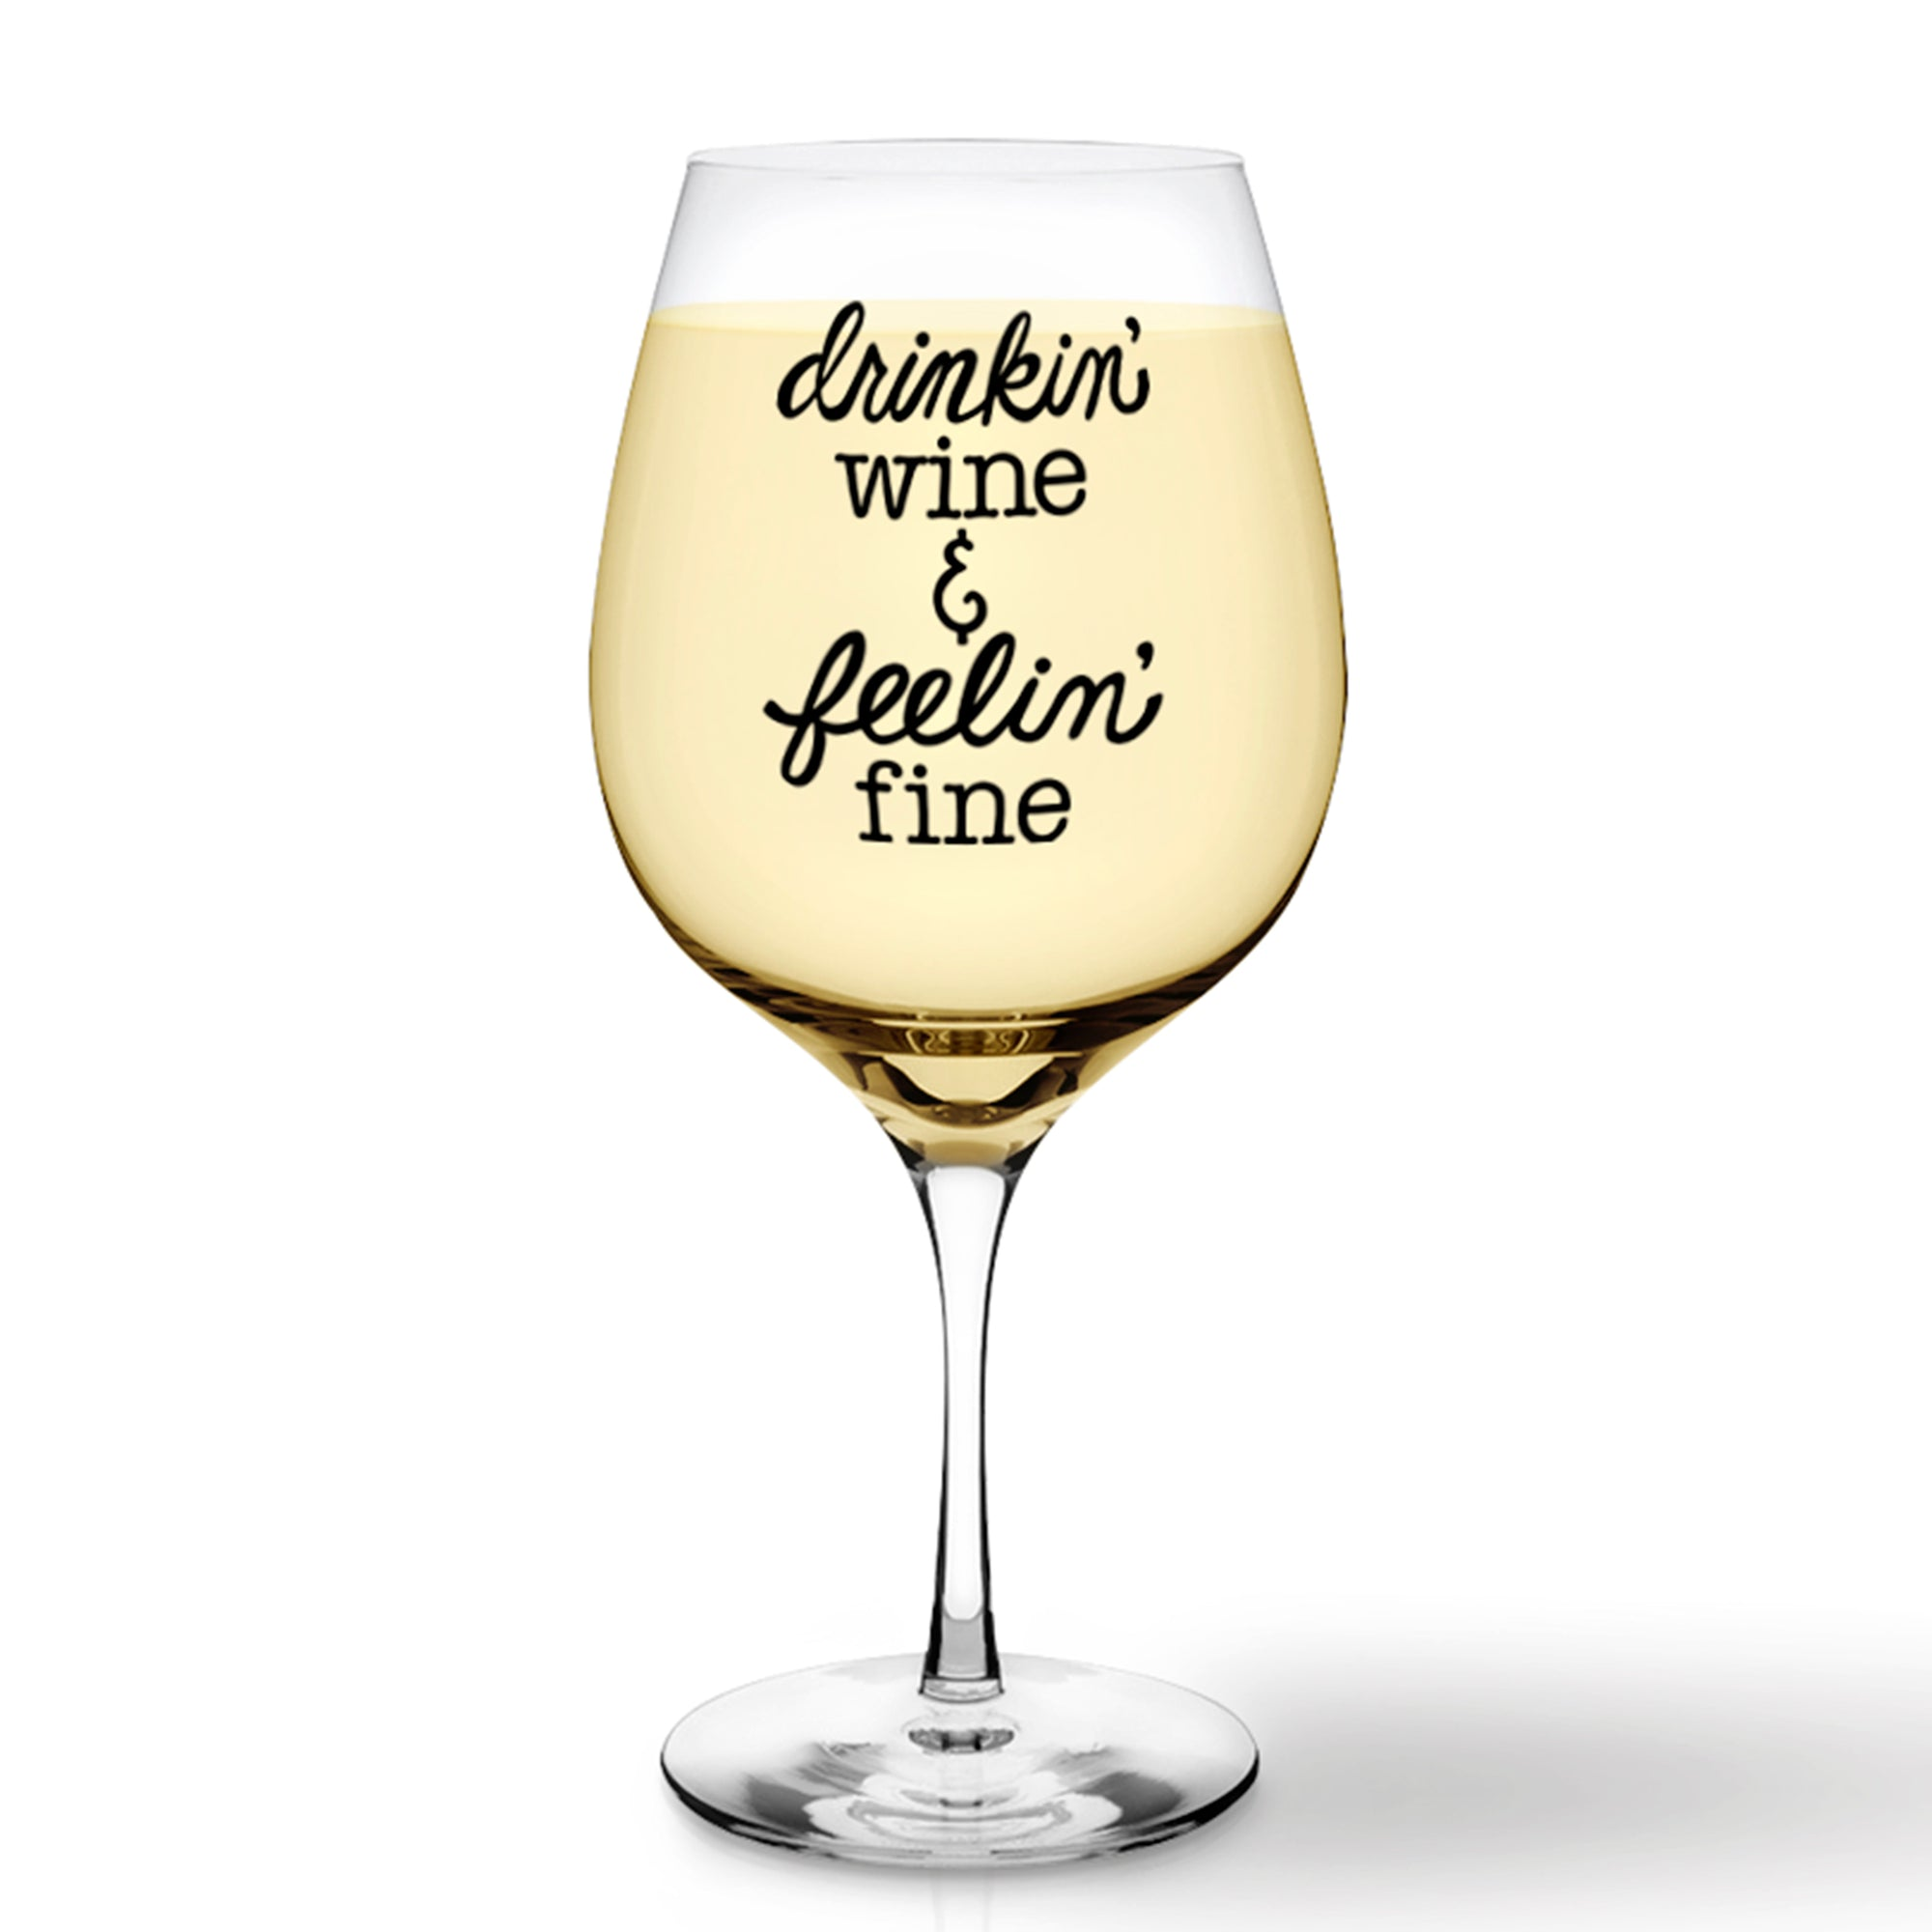 Drinkin' Wine SVG File Saying, Funny Wine Glass SVG, Wine Glass SVG Cut File, Wine Glass Cutting File, Wine SVG Files for Cricut